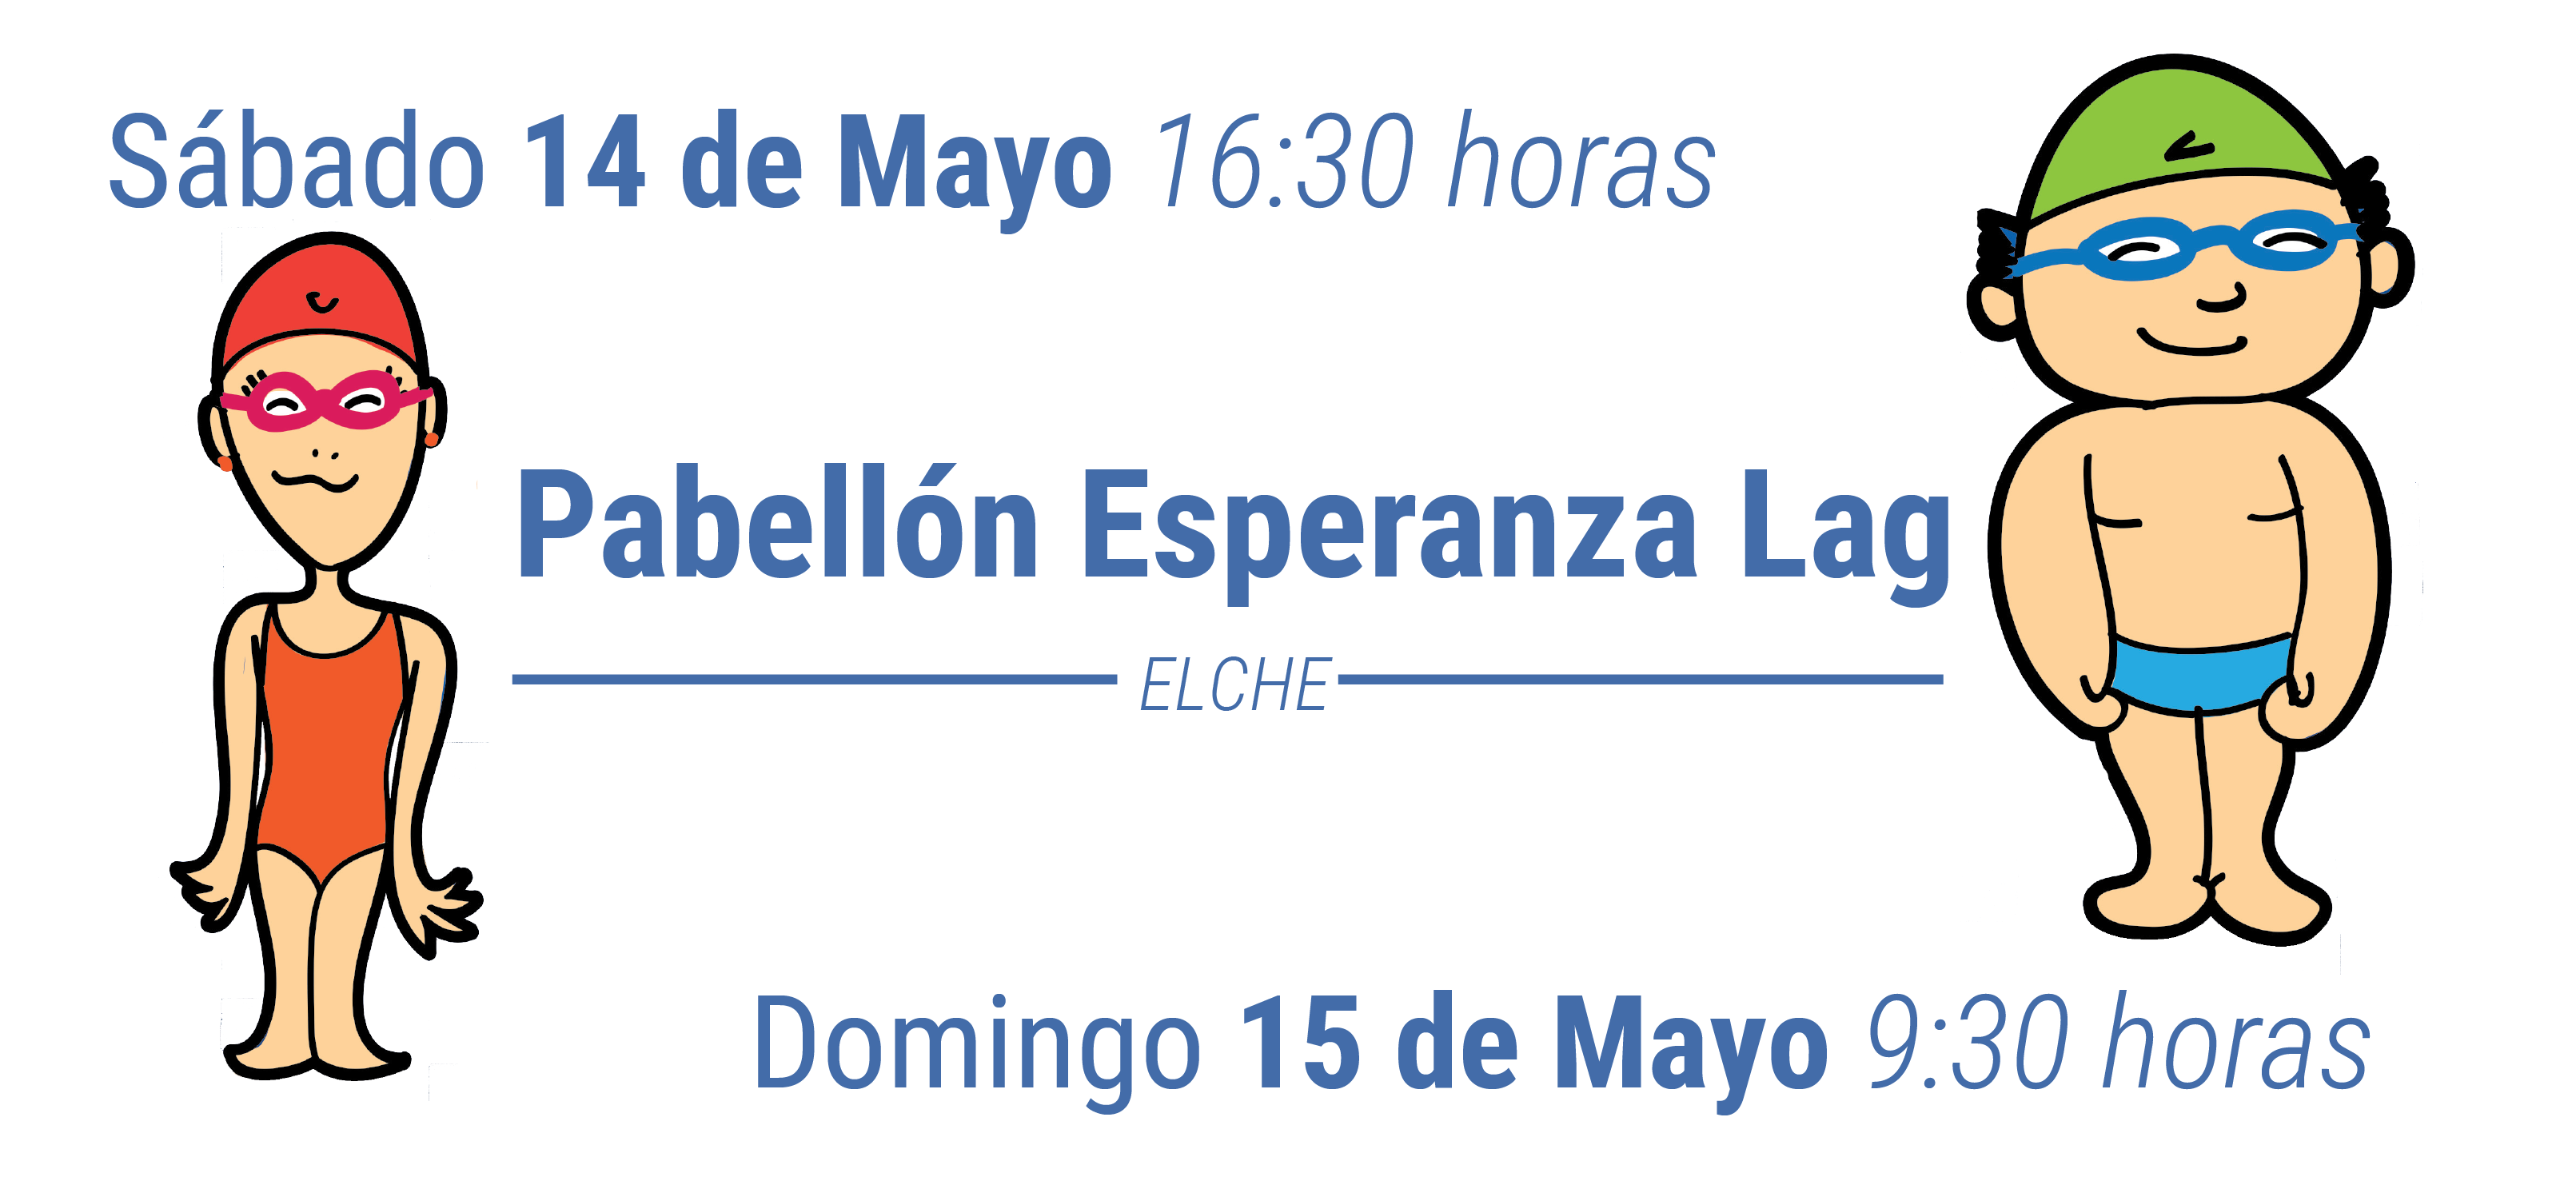 Clean and Elegant Design